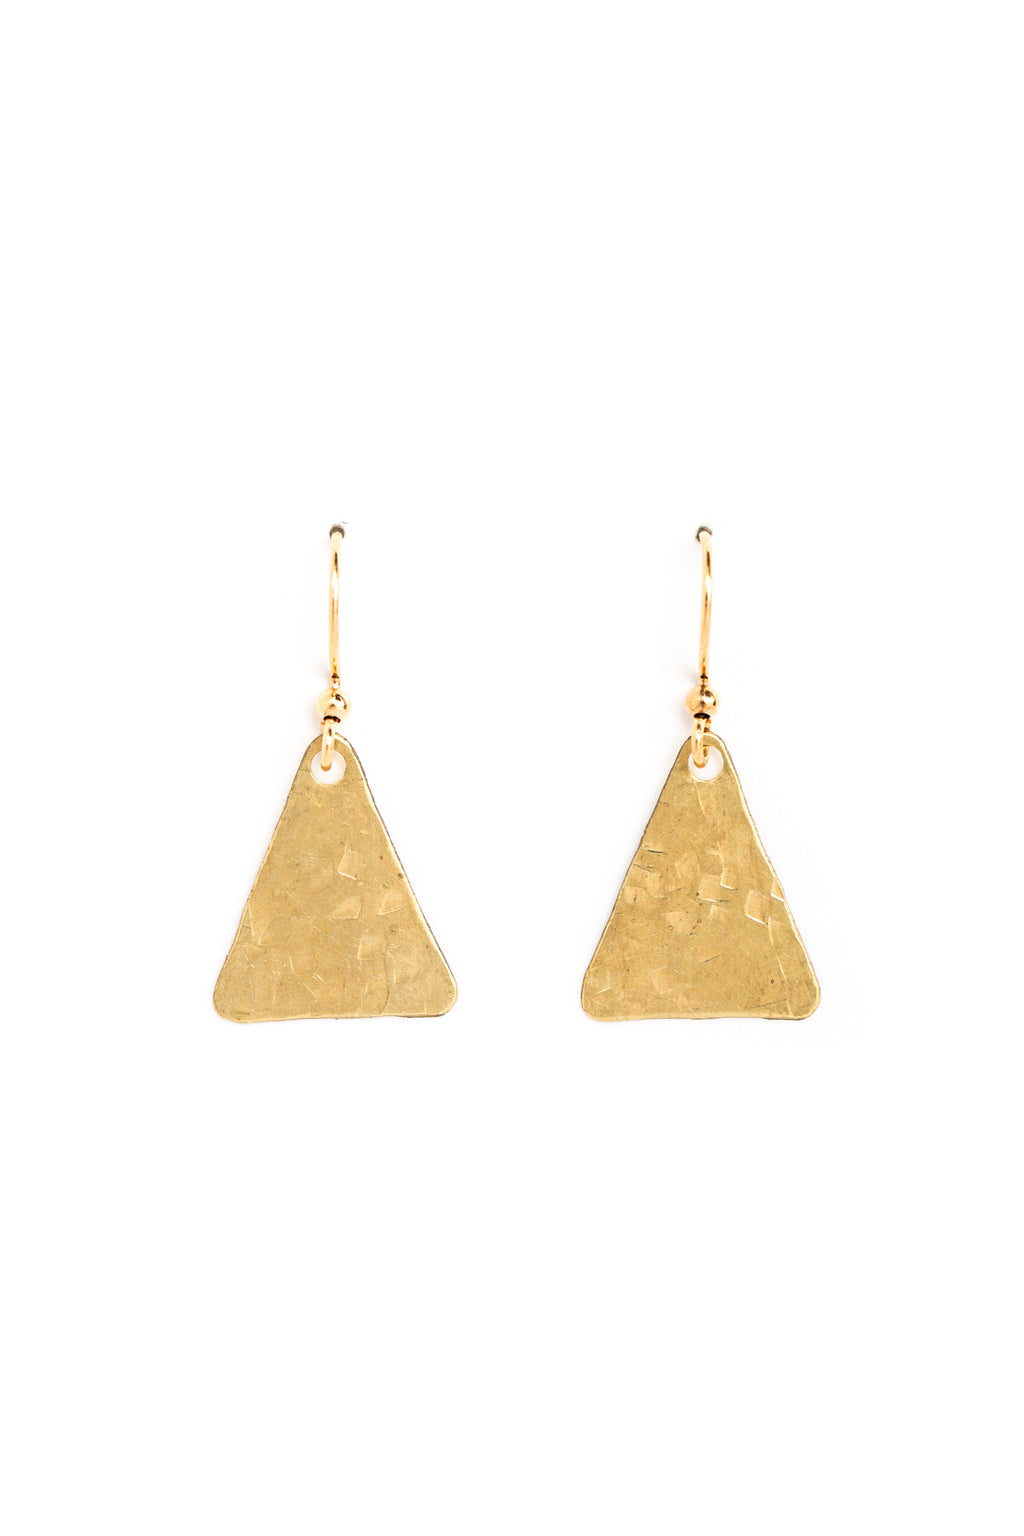 Equilateral Triangle Earrings